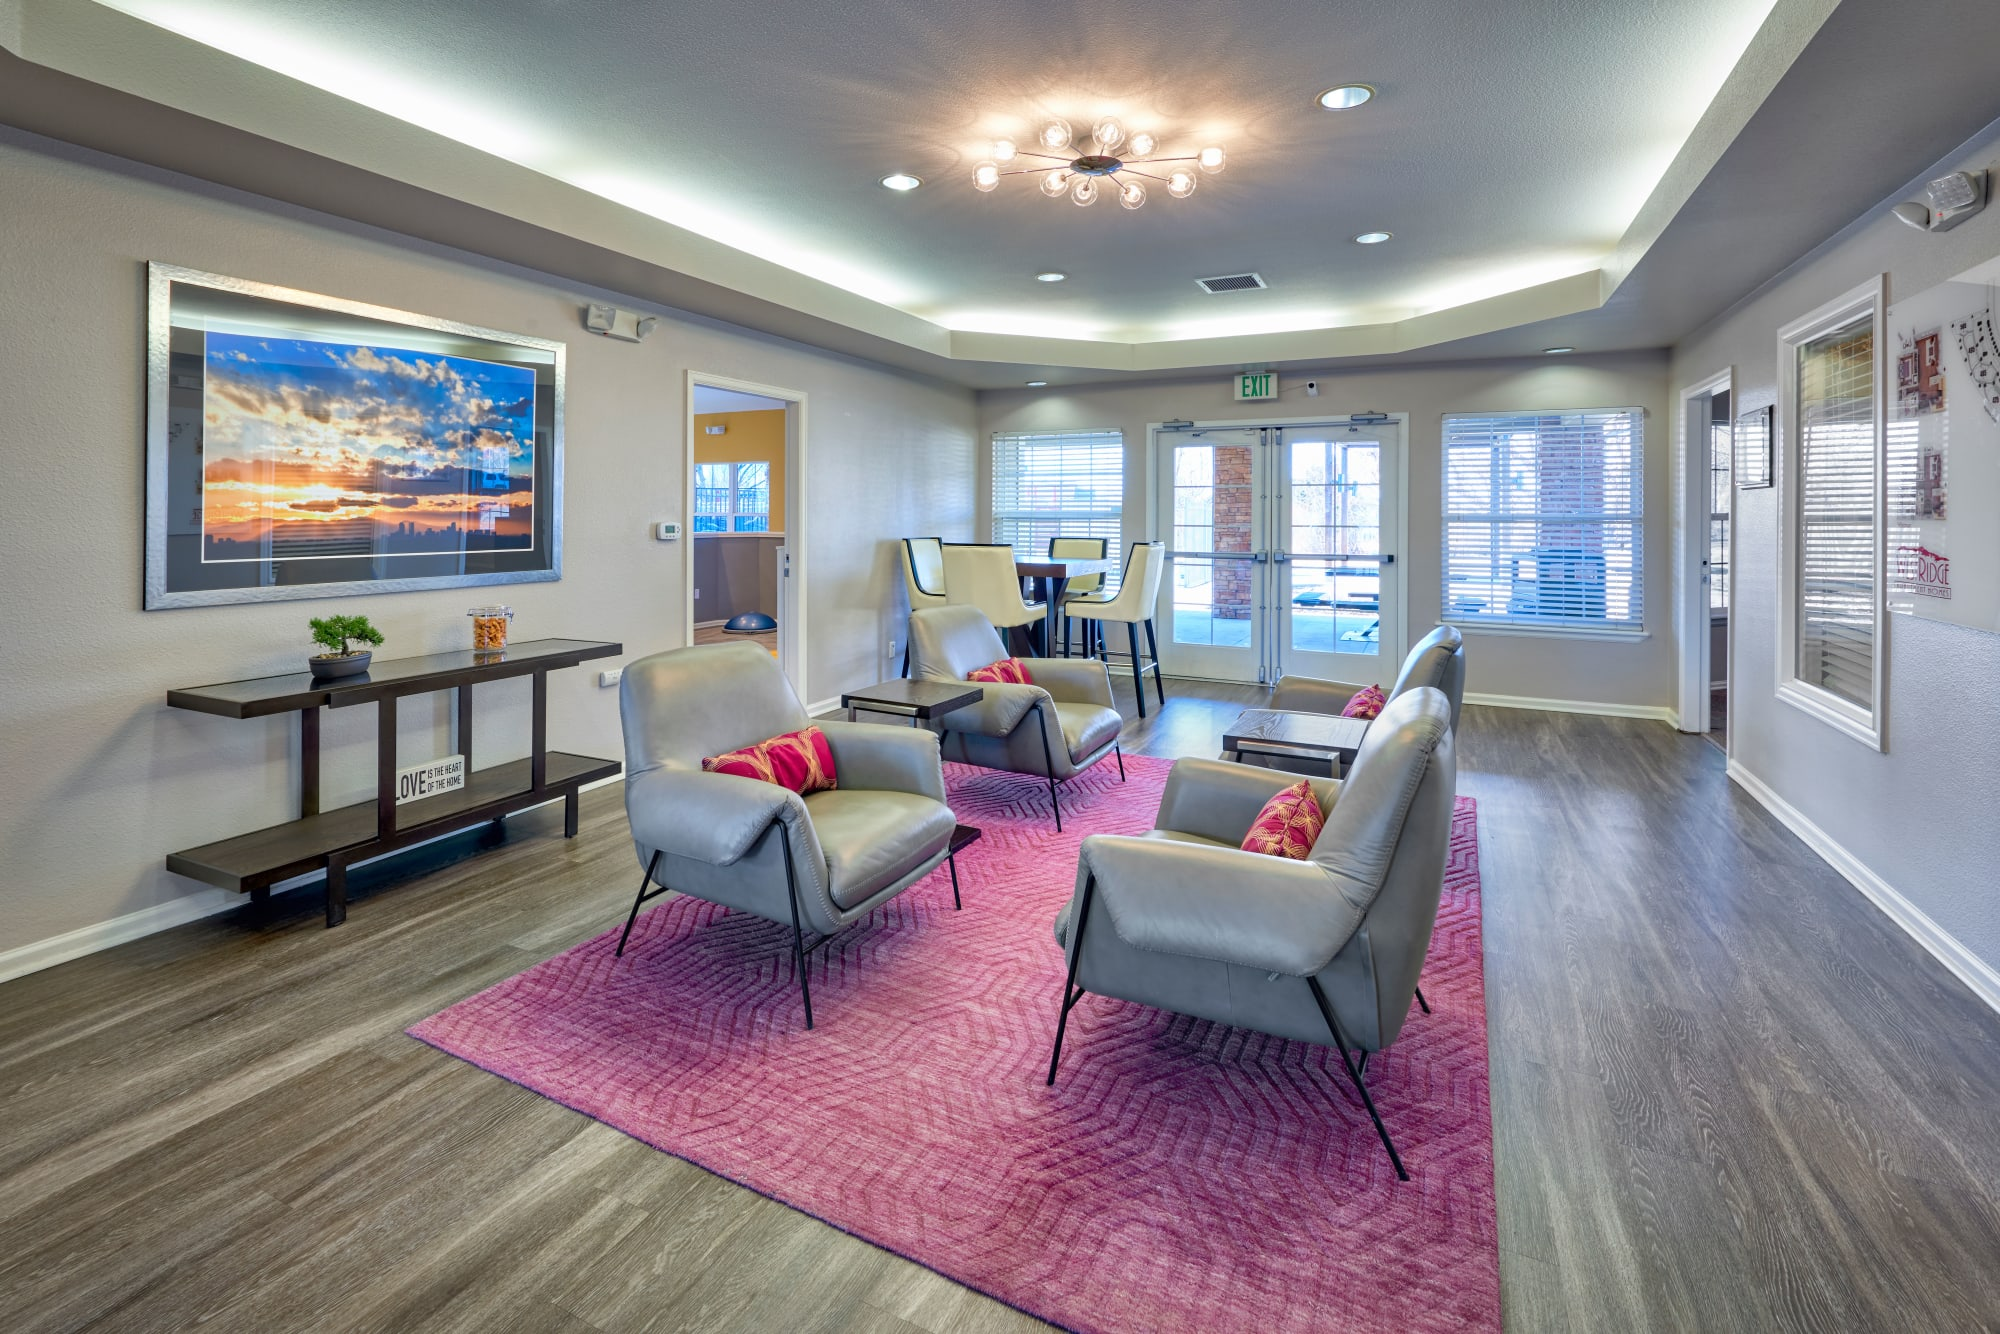 Clubhouse common area at Westridge Apartments in Aurora, Colorado